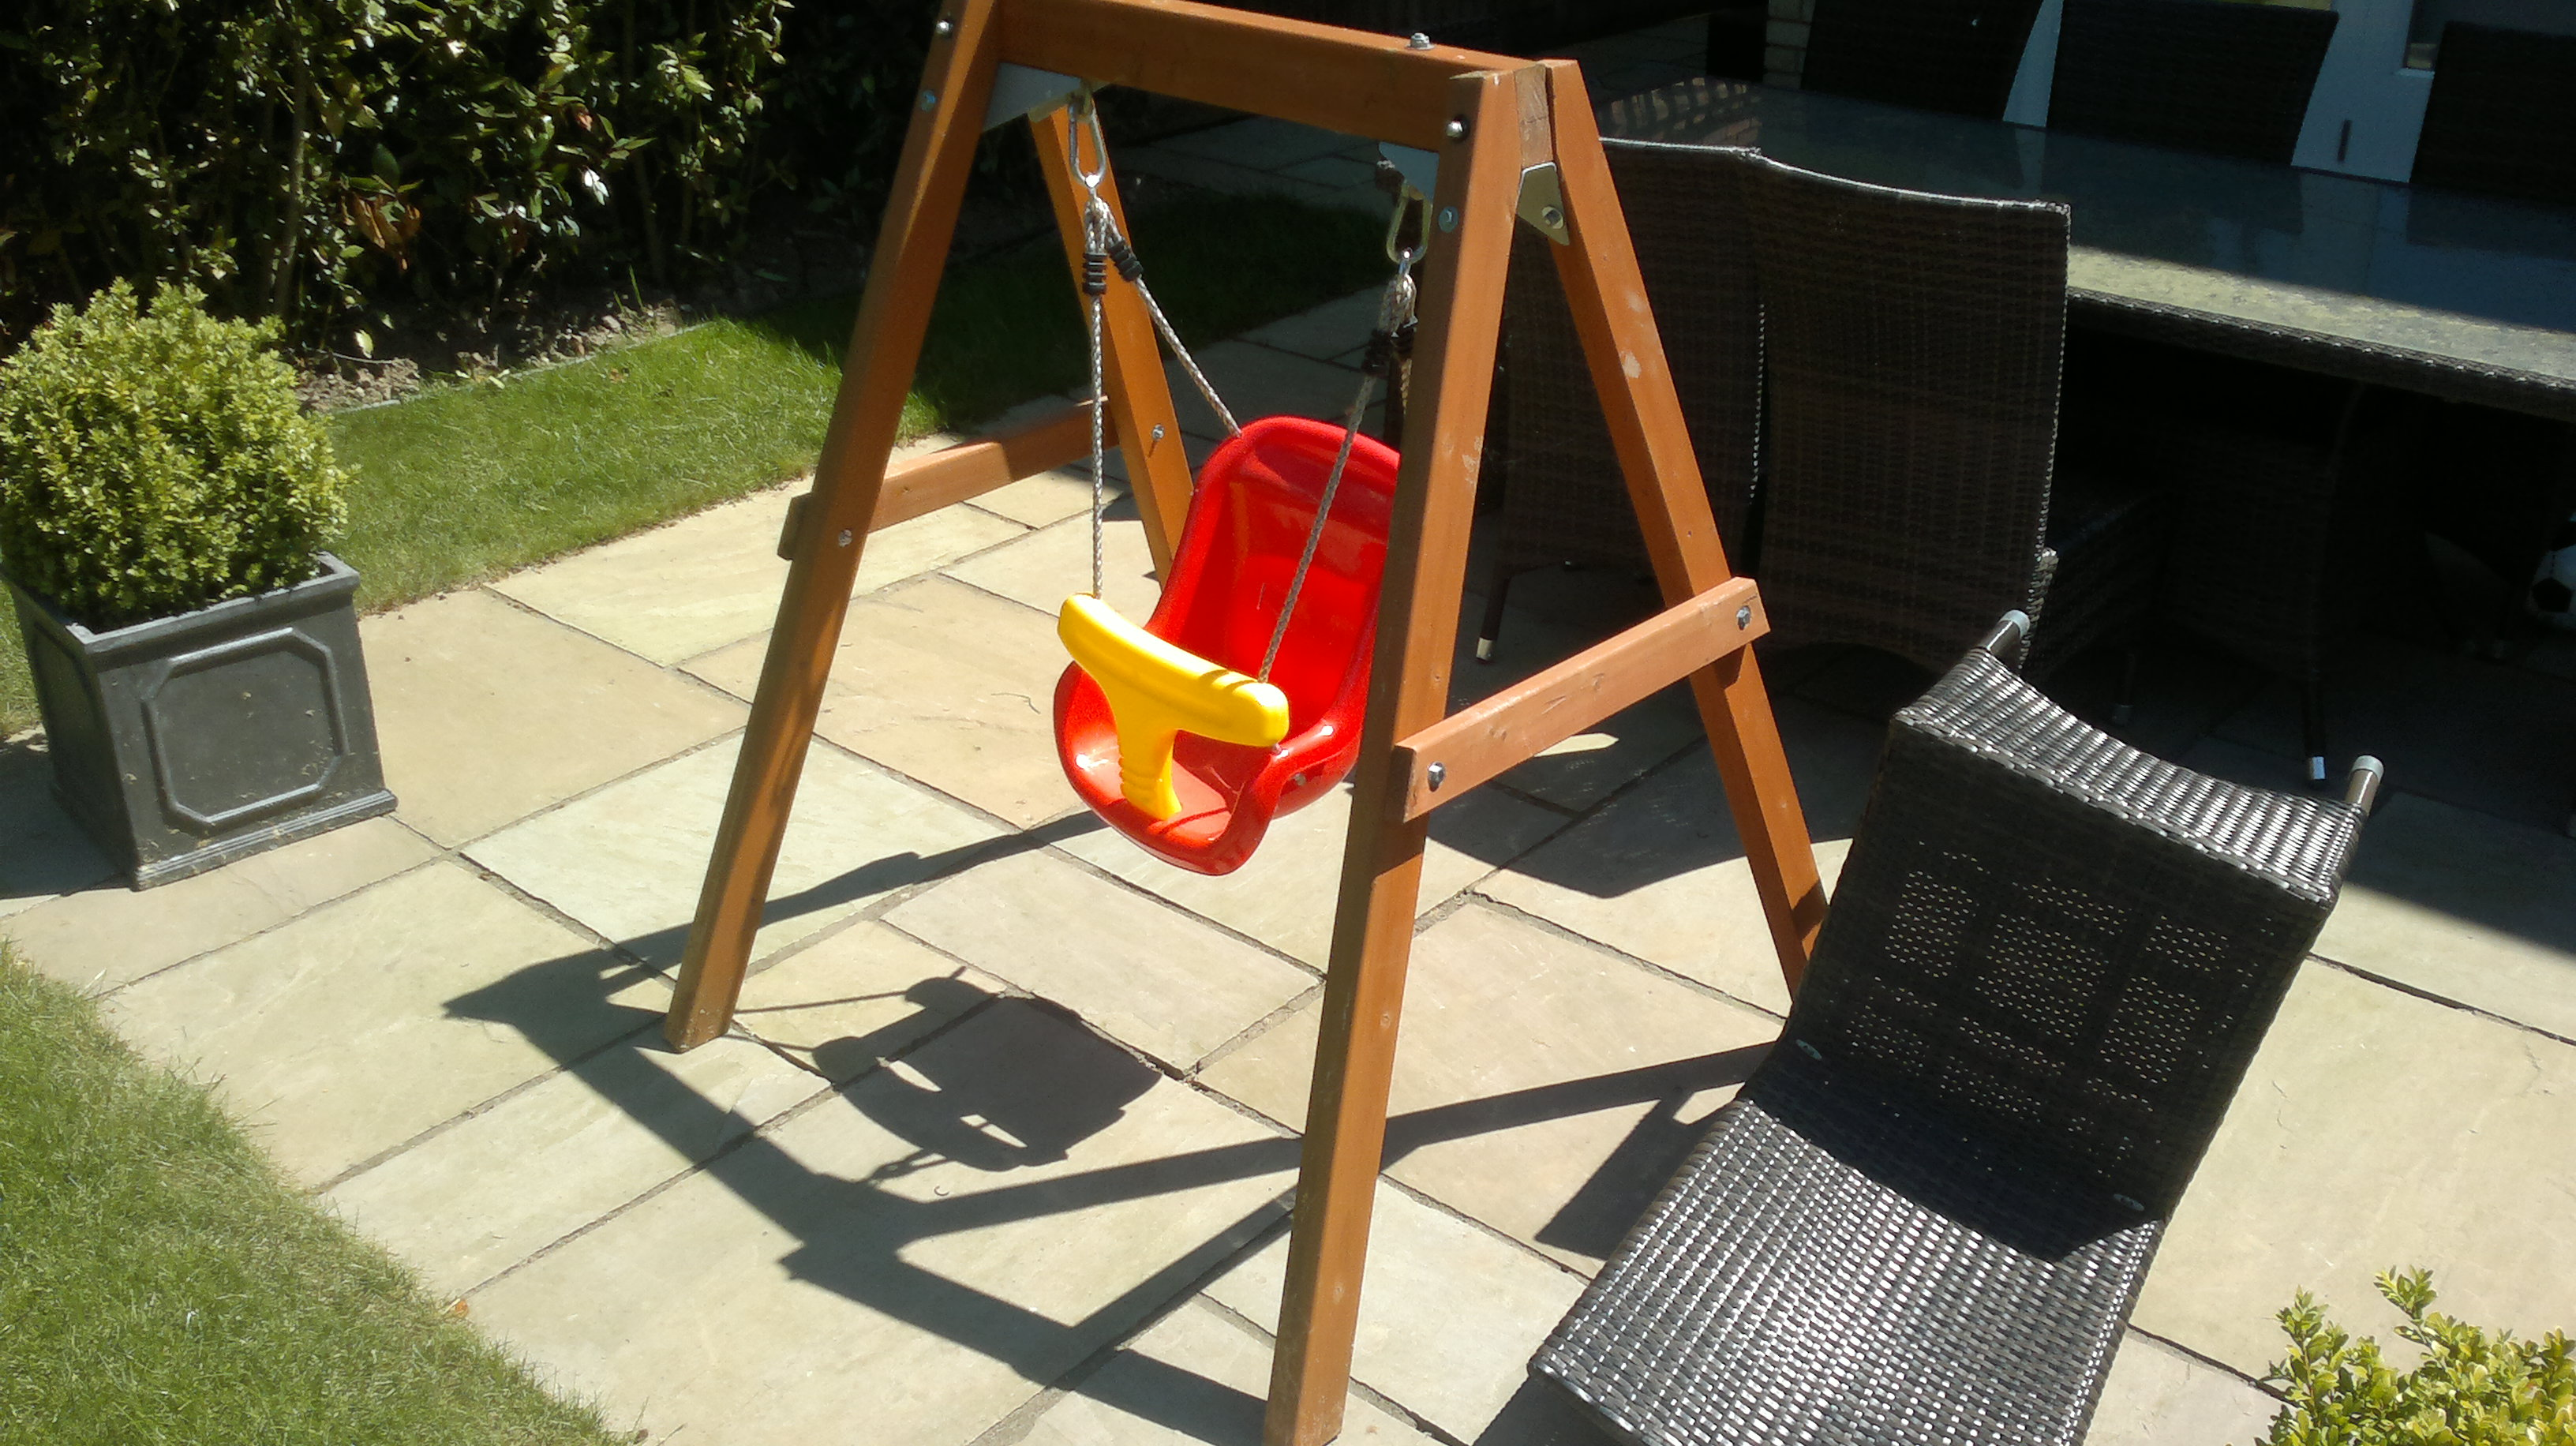 Plum Products Wooden Play Set Installation Climbing Frame Installer